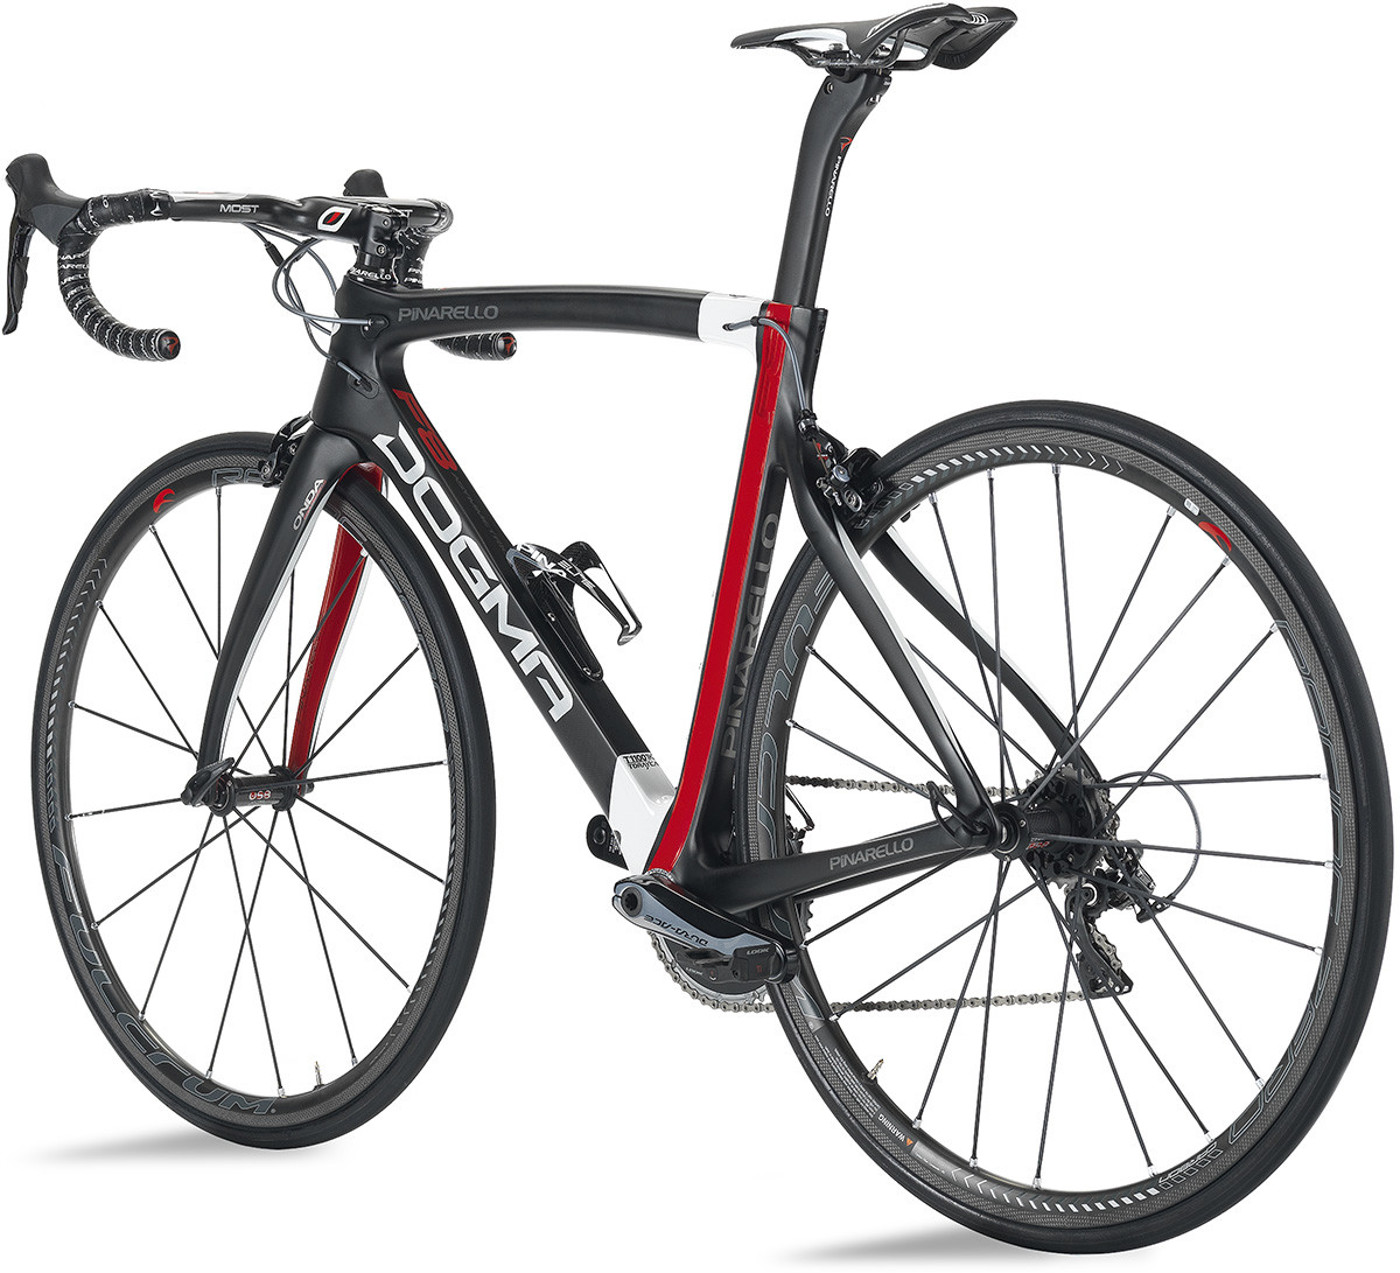 Pinarello DOGMA F8 - Carbon T11001K - 673 Carbon White Red 2016  Racercykel